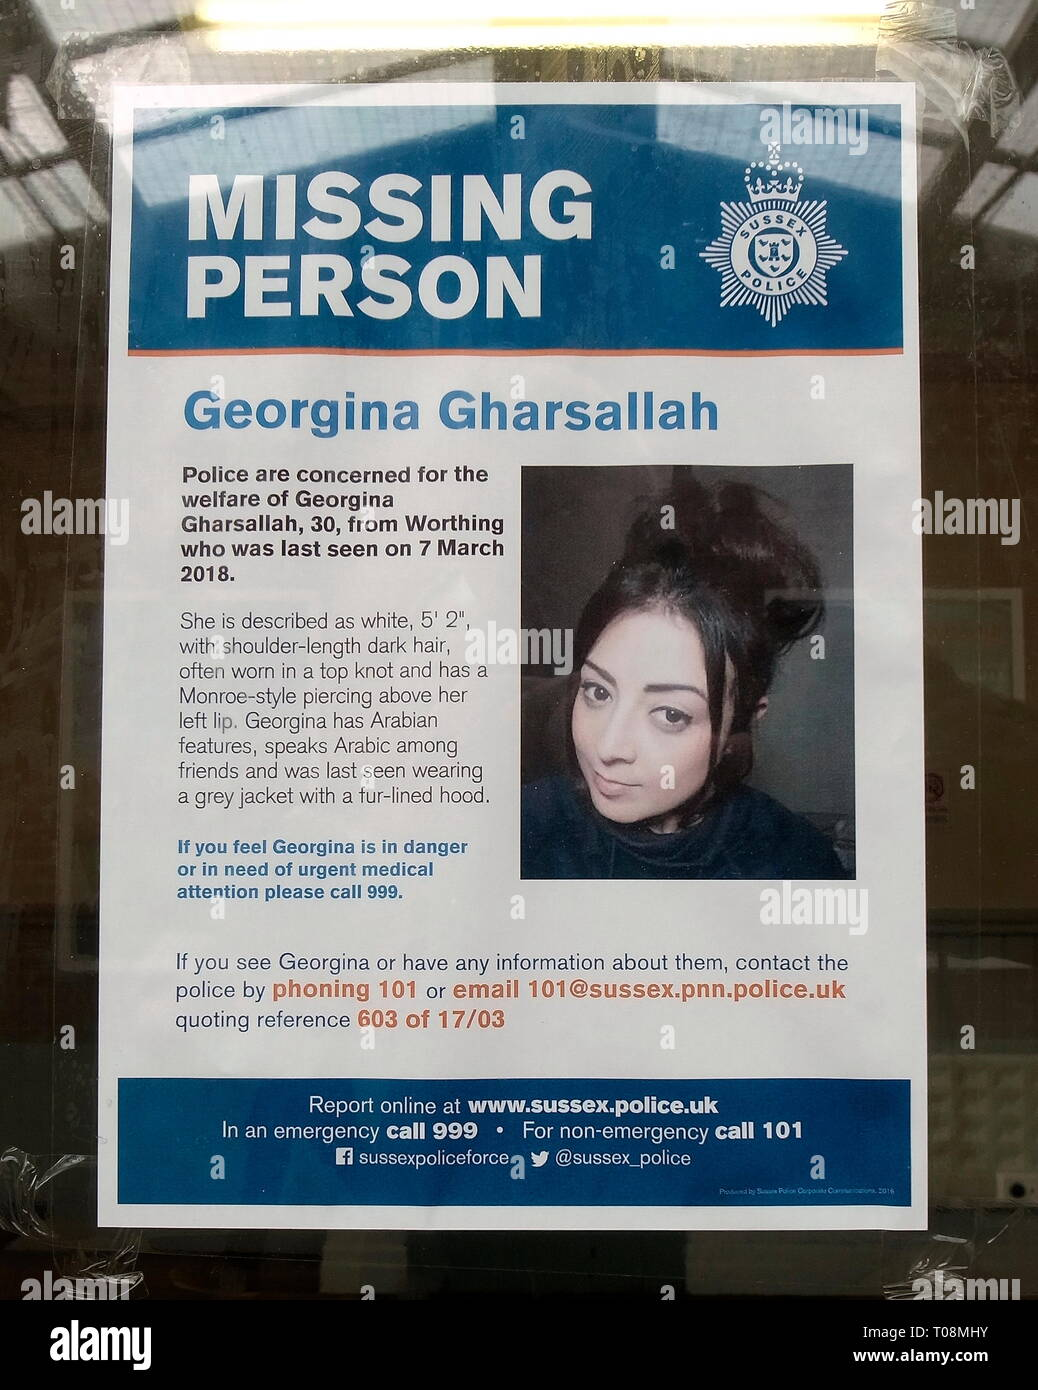 AJAXNETPHOTO. 2018. WORTHING, WEST SUSSESX, ENGLAND. - MISSING PERSONS - A POSTER OR NOTICE DEPICTING IMAGE OF A PERSON REPORTED MISSING POSTED IN A PUBLIC PLACE IN THE TOWN OF WORTHING. PERSON NAMED IN THIS NOTICE; GEORGINA GHARSALLAH, REPORTED MISSING 7TH MARCH, 2018, NOTICE ISSUED BY SUSSEX POLICE. PHOTO:JONATHAN EASTLAND/AJAX REF:GR180404_7901 - Stock Image